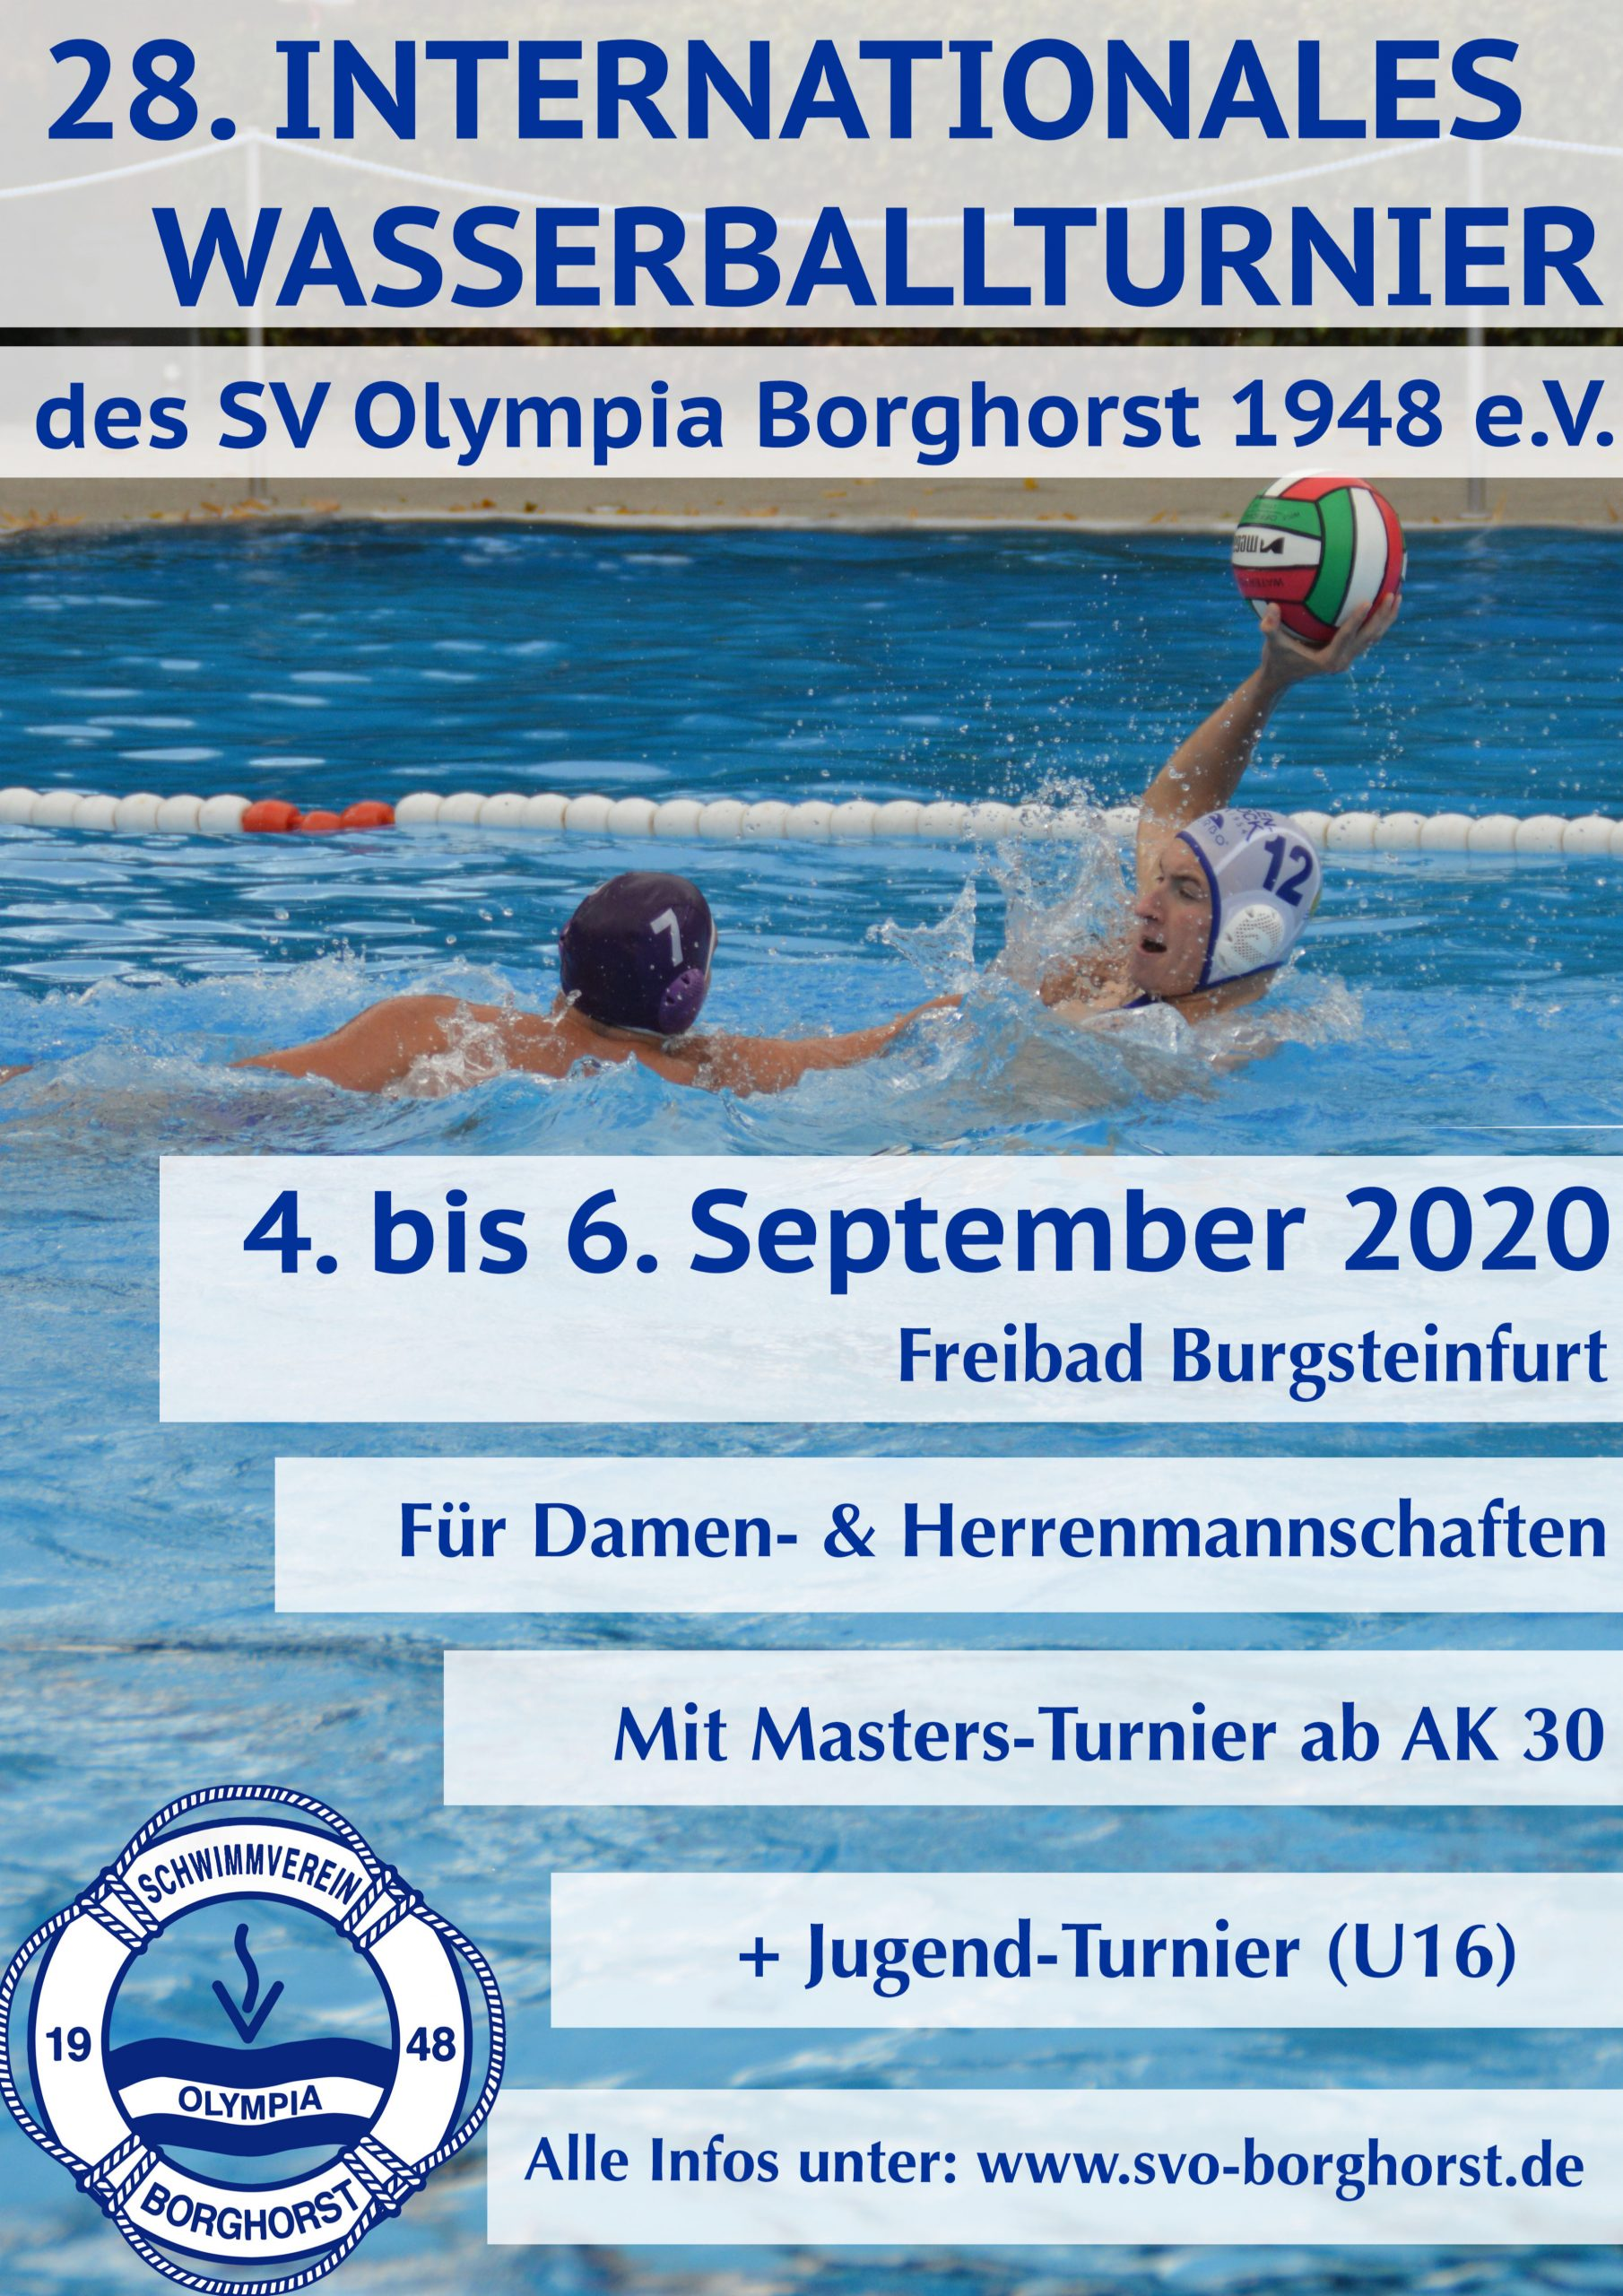 28. Internationales Wasserballturnier